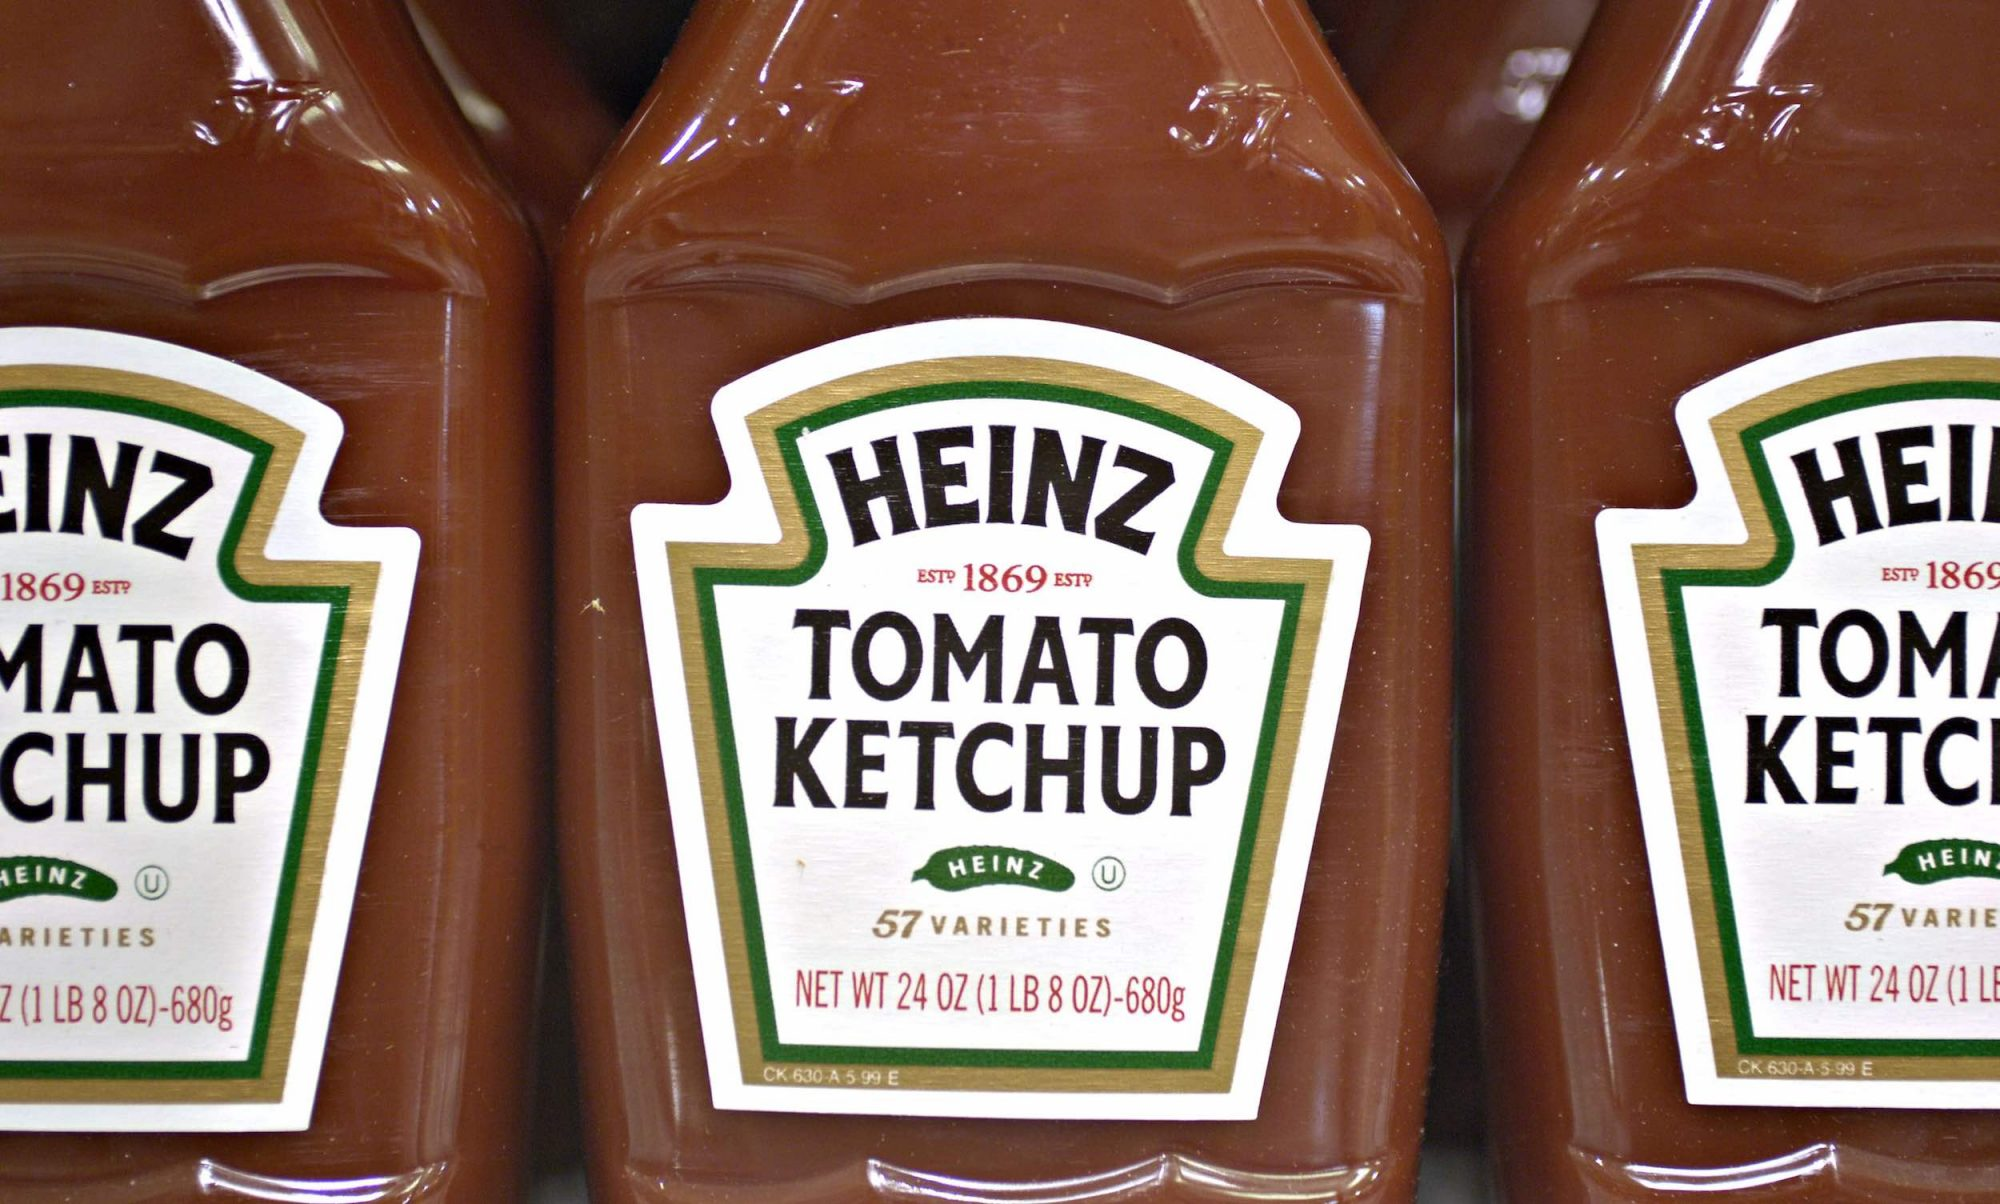 what is heinz kethcup